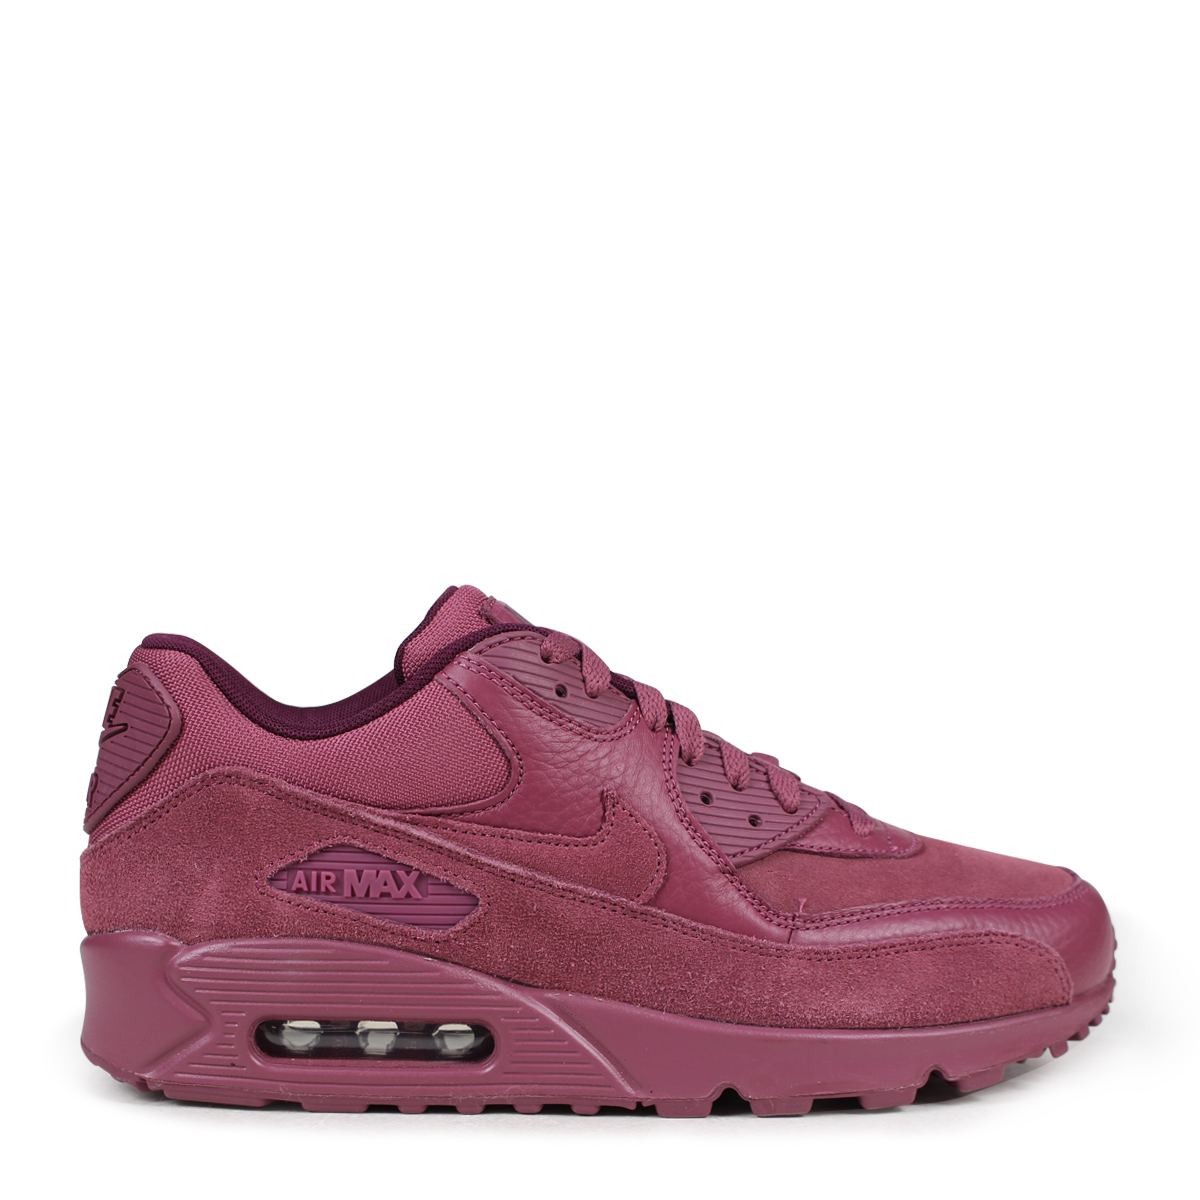 huge discount 975bb 06fa1 ... NIKE AIR MAX 90 PREMIUM Kie Ney AMAX 90 sneakers men 700,155-601 red ...